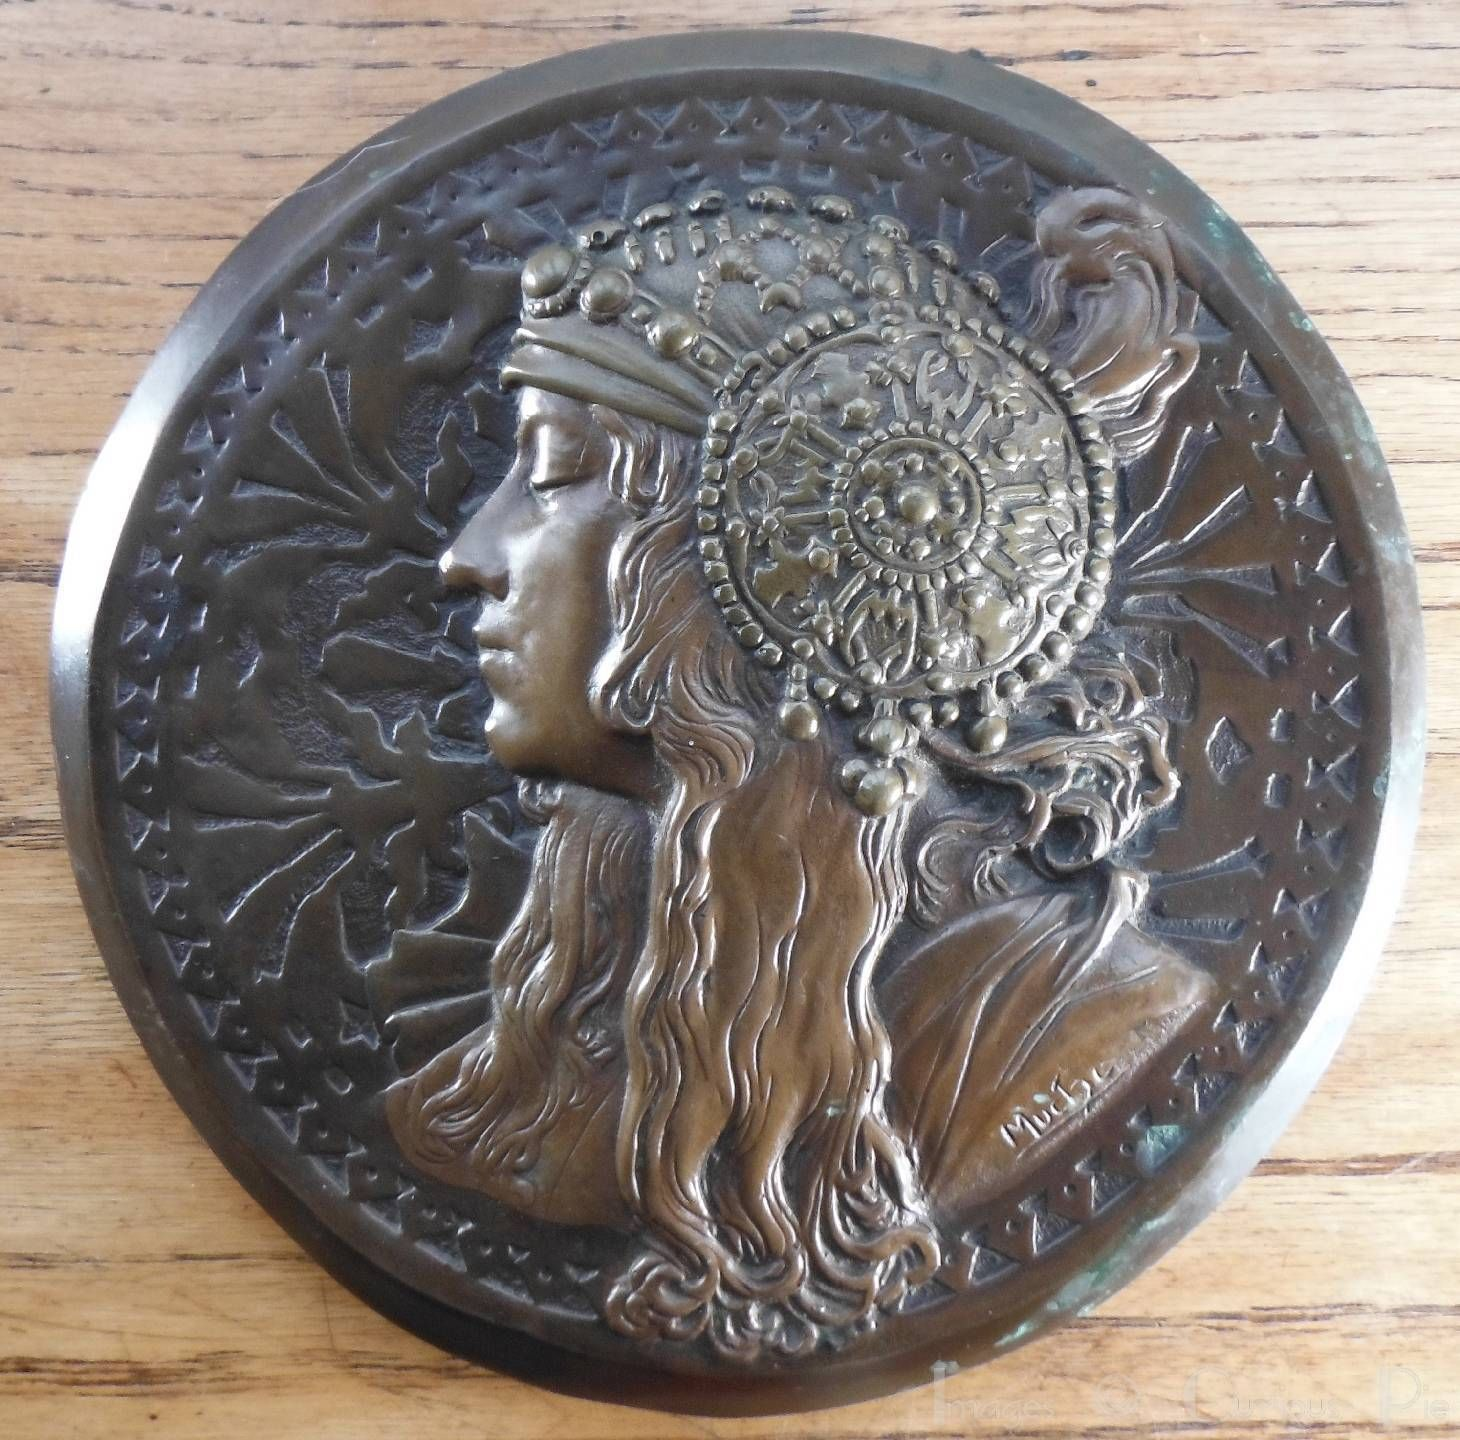 Vintage Art Nouveau Lady Mucha Style Bronzed Wall Plaque Facing Right Ref 1 | eBay